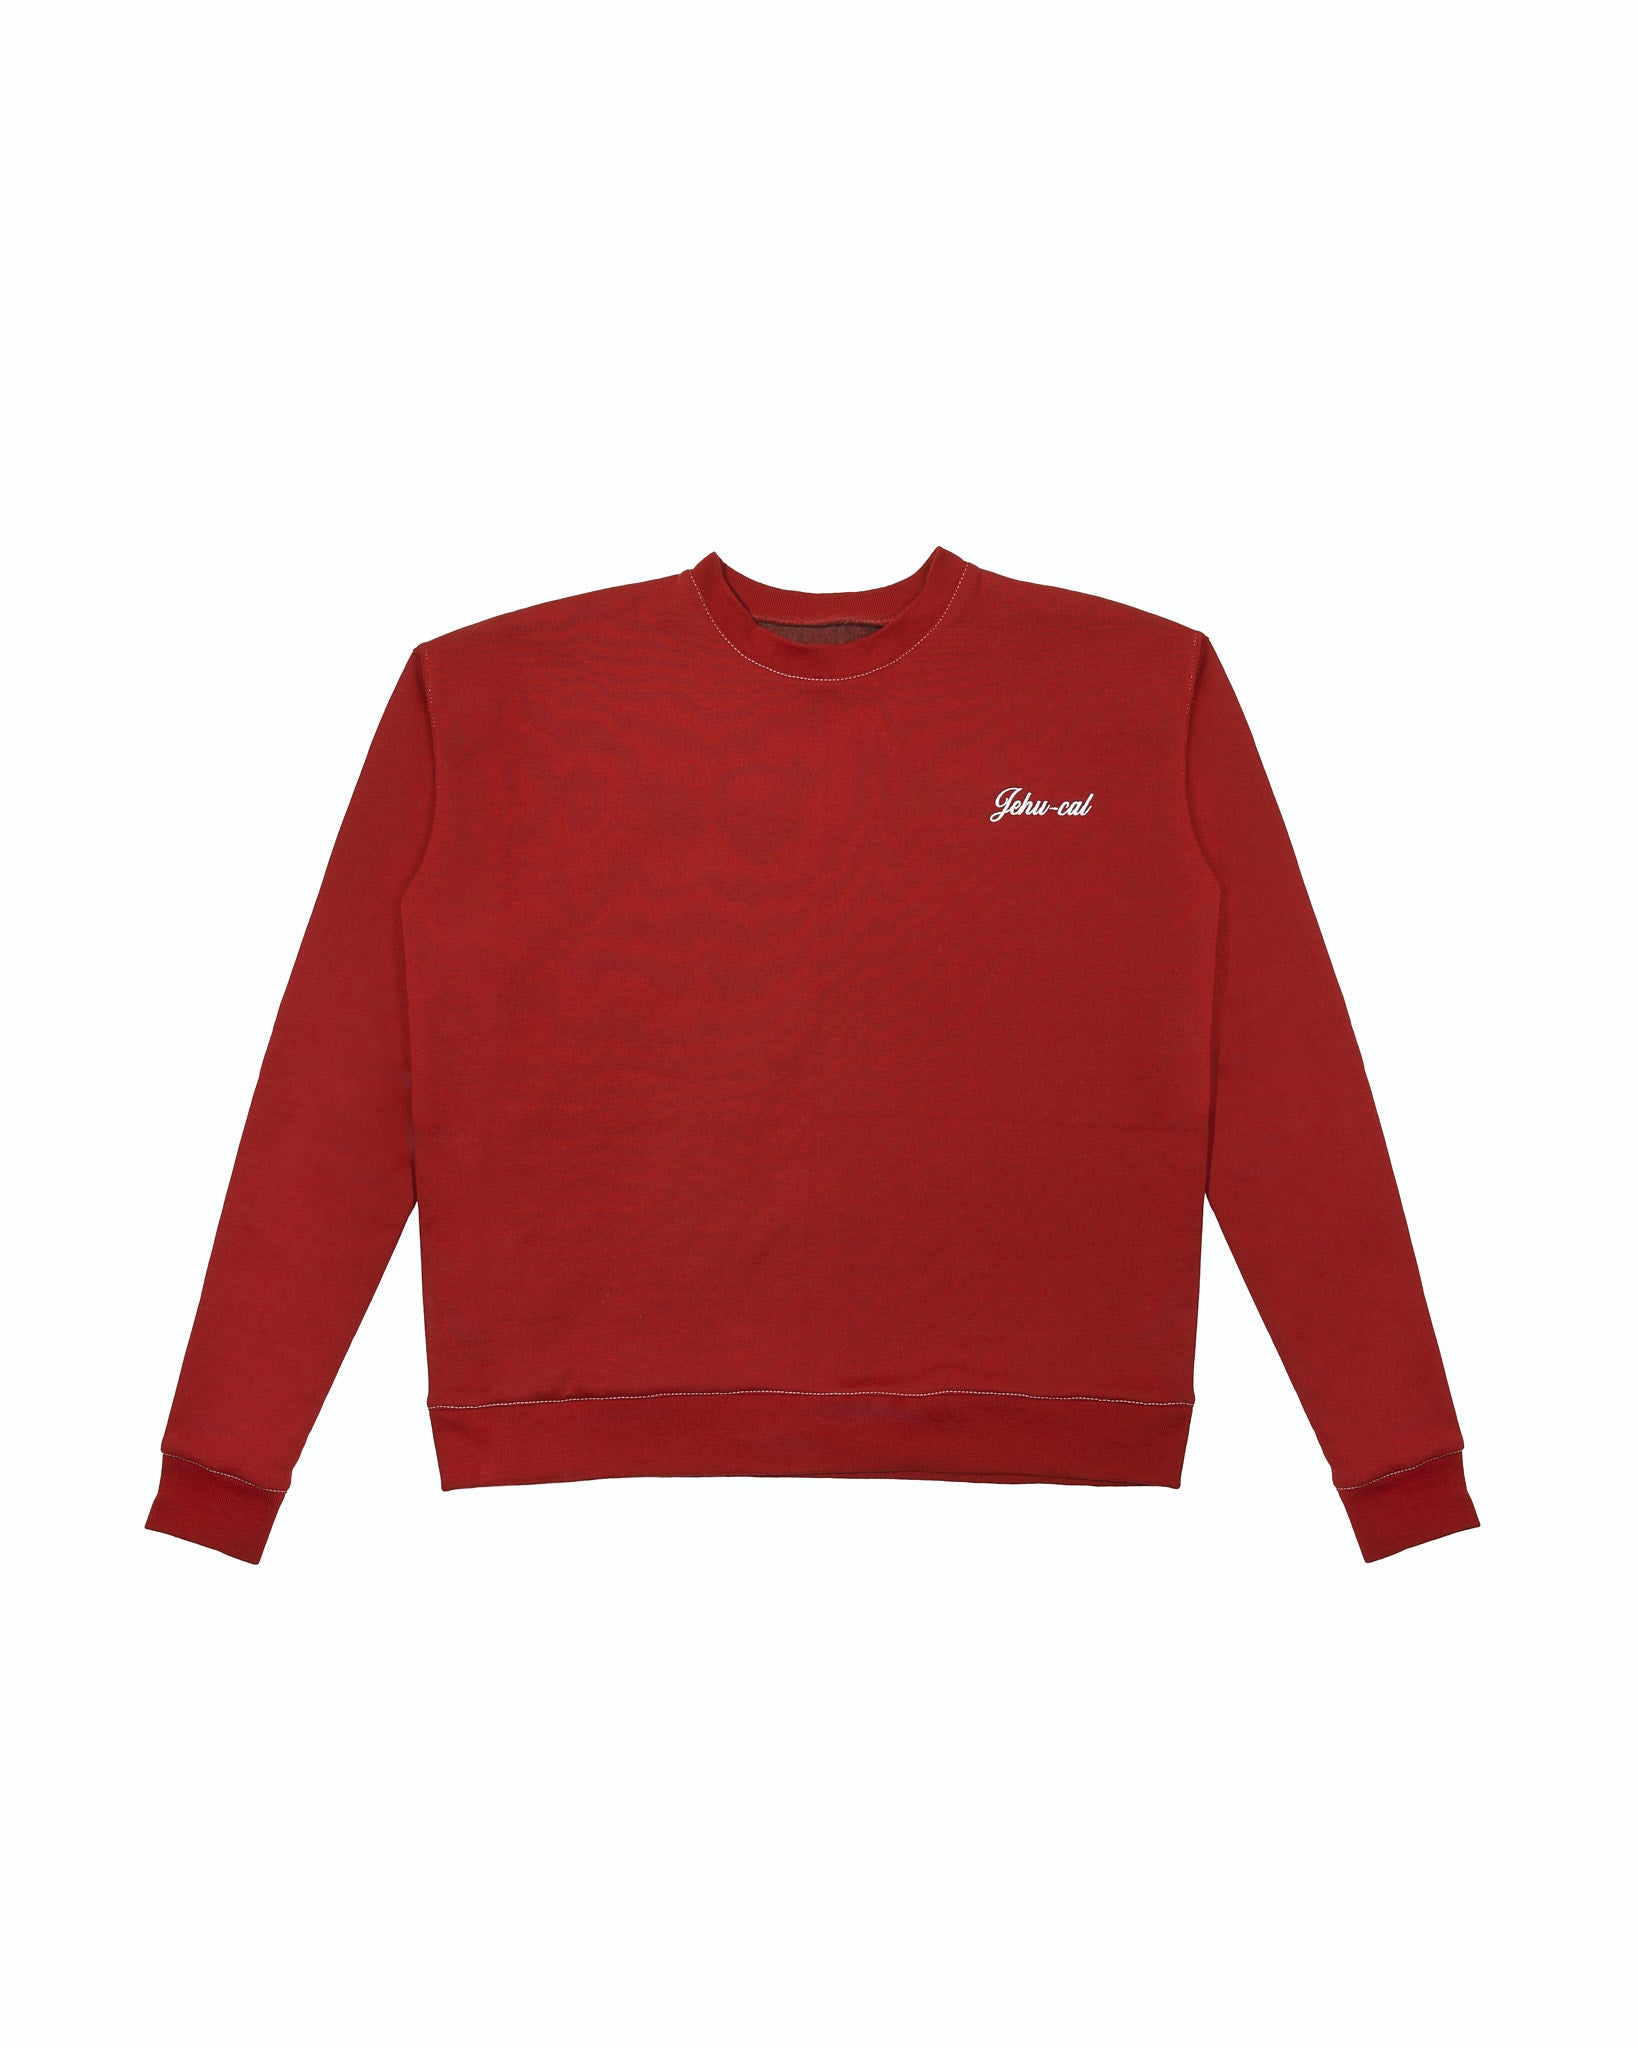 OXBLOOD SWEATSHIRT